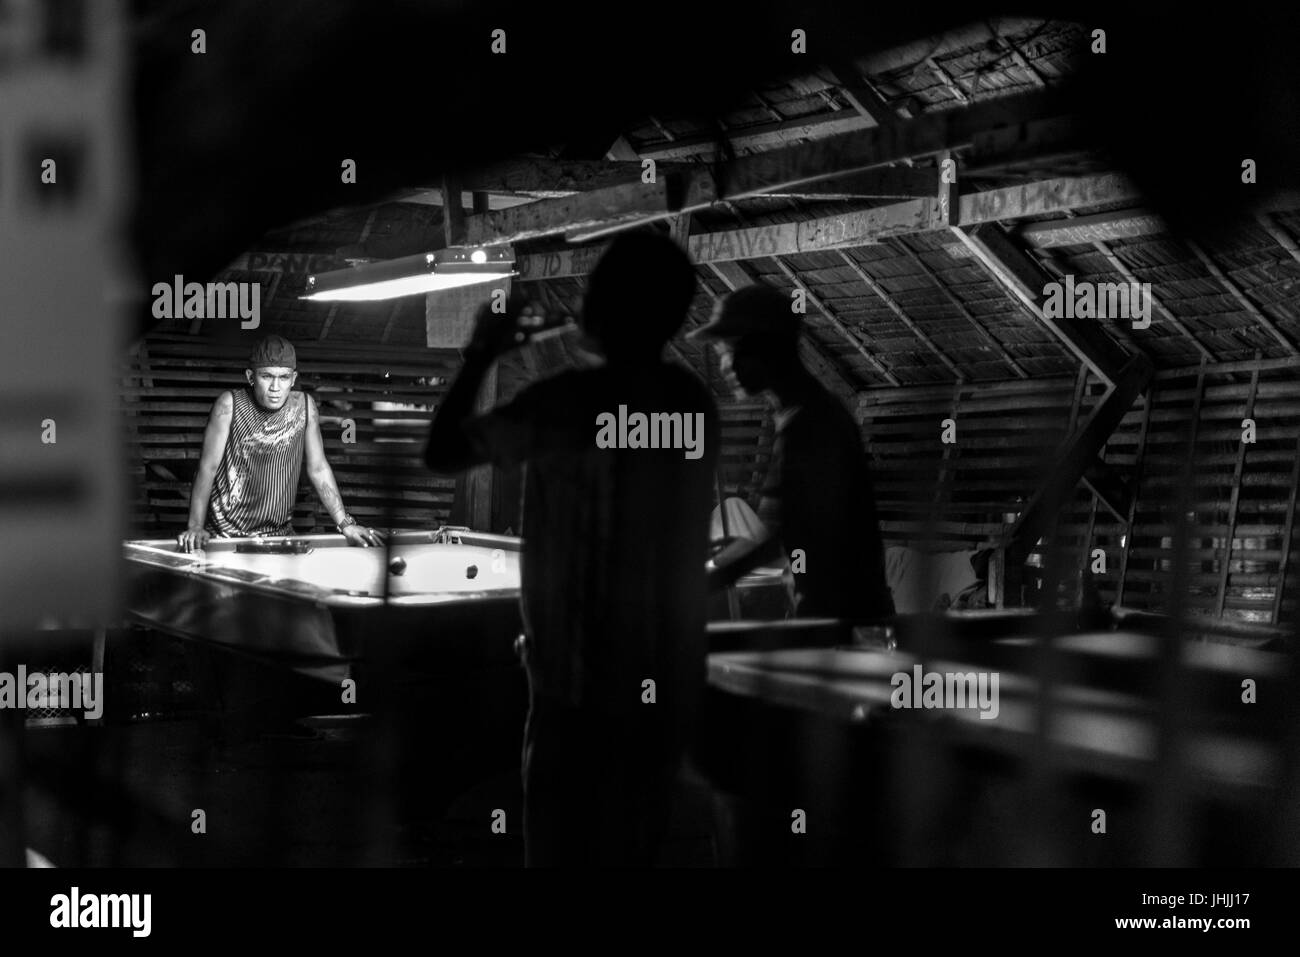 BORACAY, WESTERN VISAYAS, PHILIPPINES - JANUARY 16, 2015: Black and white picture of filipinos playing snooker. - Stock Image